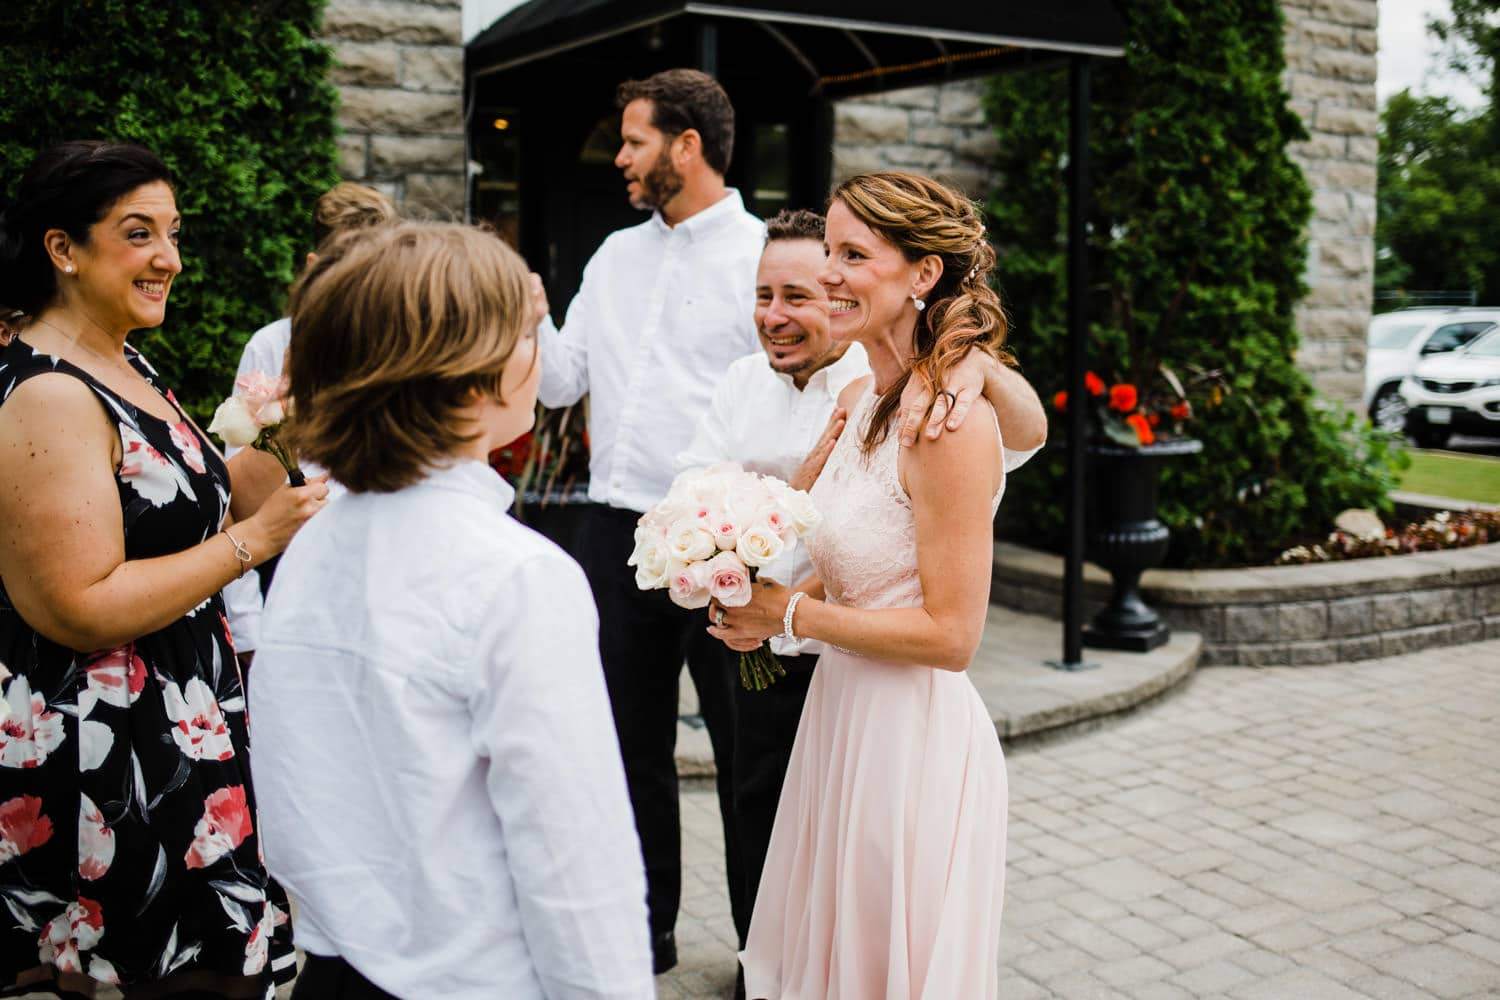 bride and groom celebrate after the ceremony - small outdoor ottawa wedding